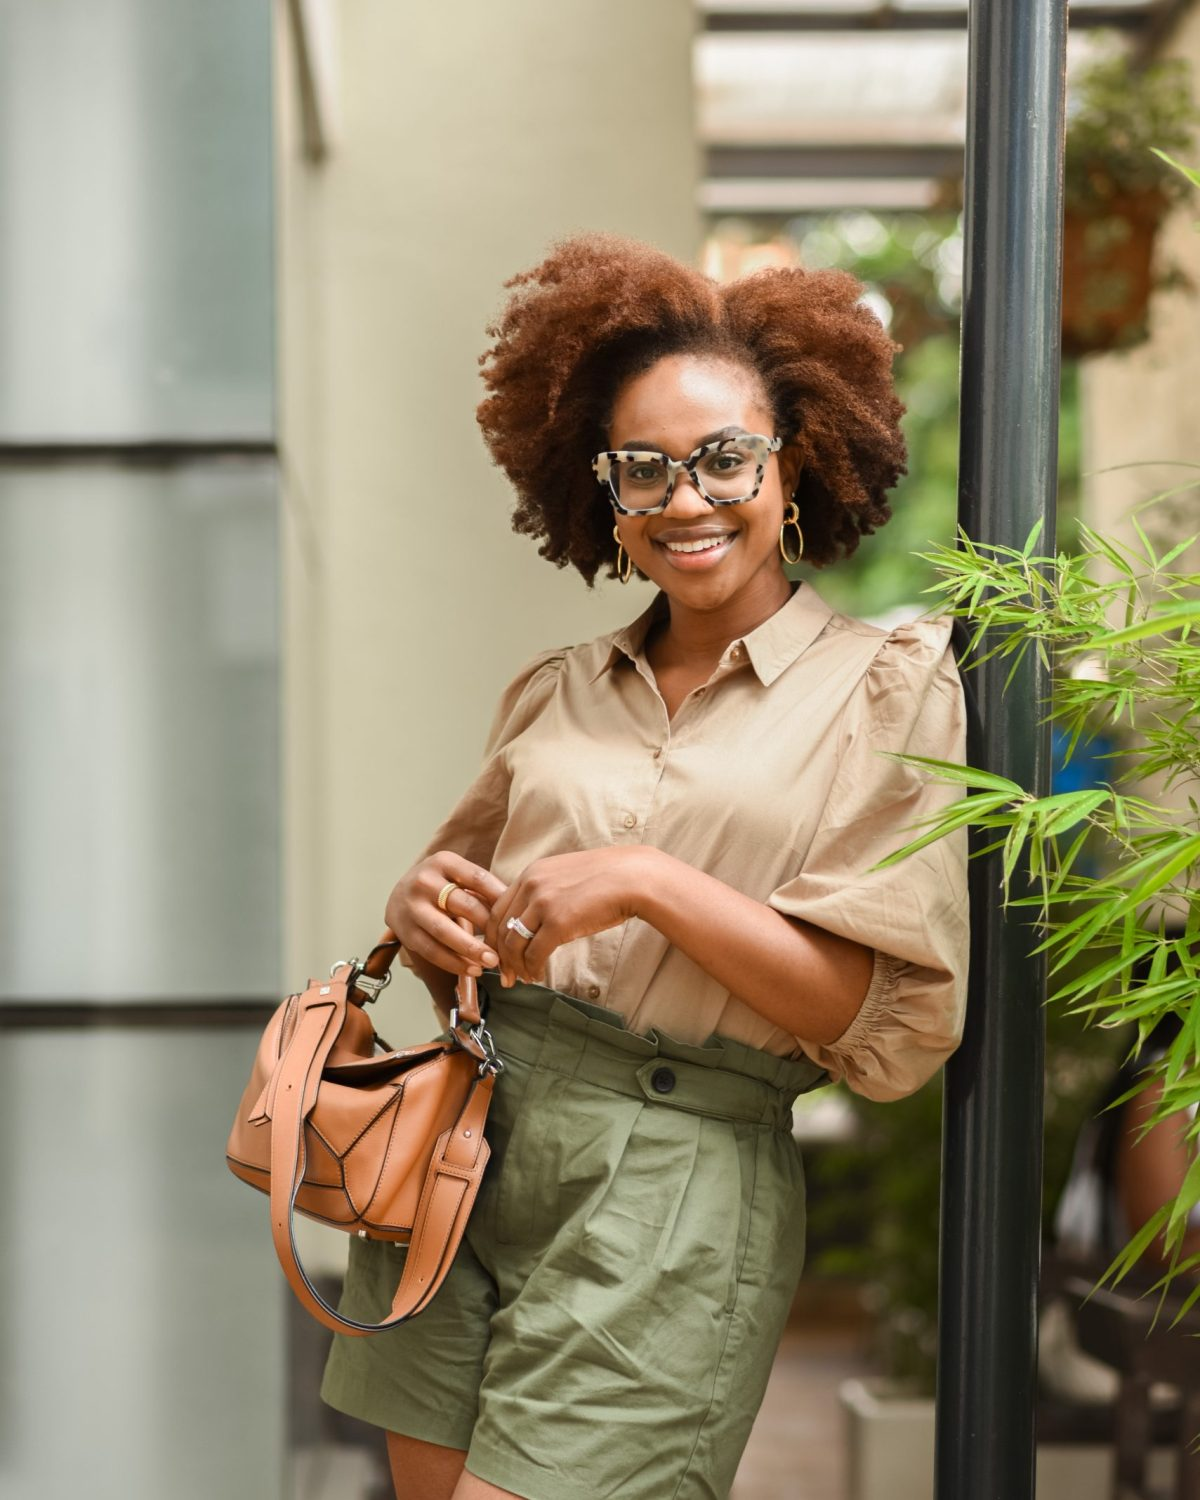 Ijeoma Kola posing in beige shirt and khaki shorts with brown handbag